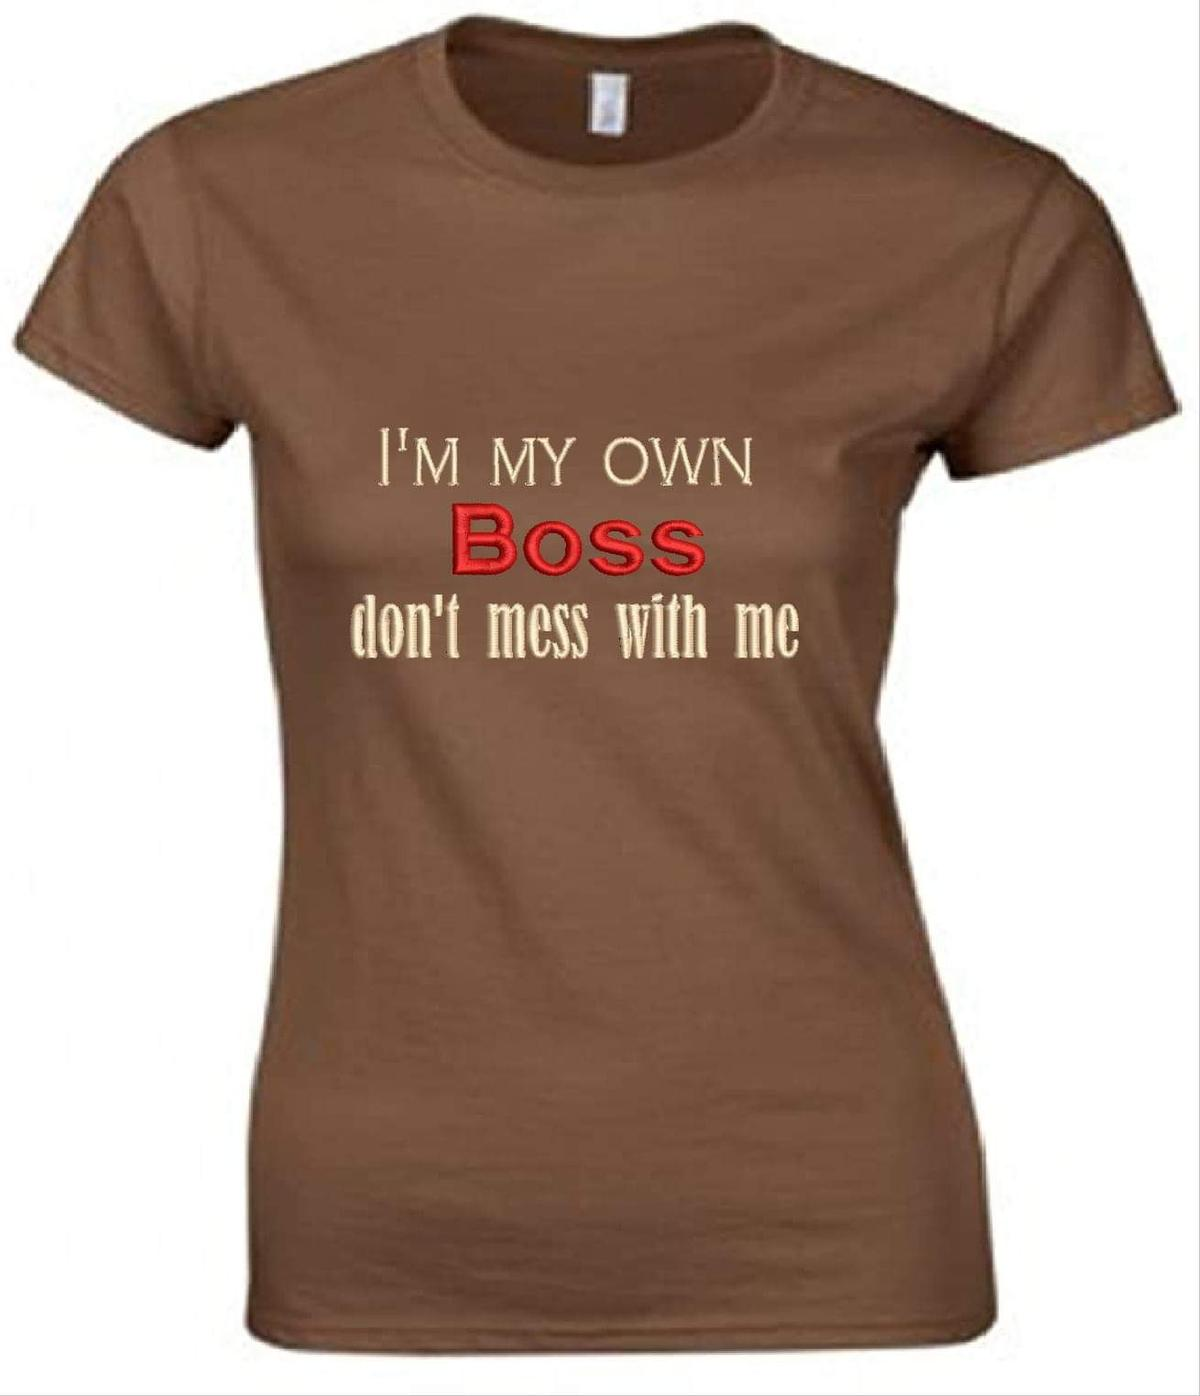 I'm my own Boss don't mess with me Machine Embroidered women T-Shirt. You can also have your own few words Machine Embroidered on your T-shirt or just have your initials with your own choice colours. Please Note all Embroidery designs are Embroidered to your request once Embroidered the design can't be returned